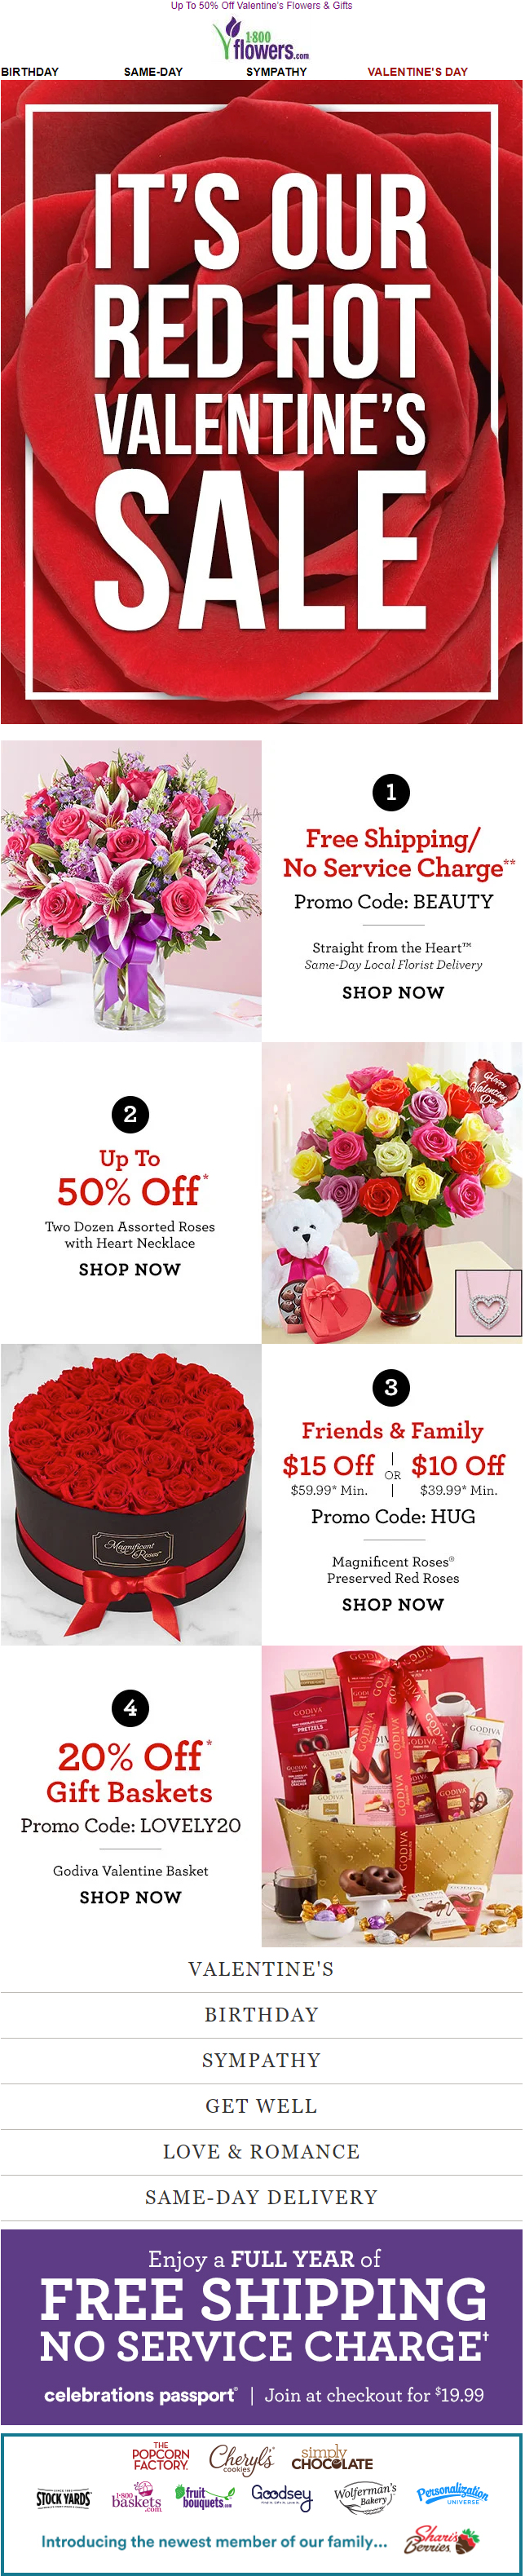 personalization-universe-here-s-a-treat-red-hot-valentine-s-sale